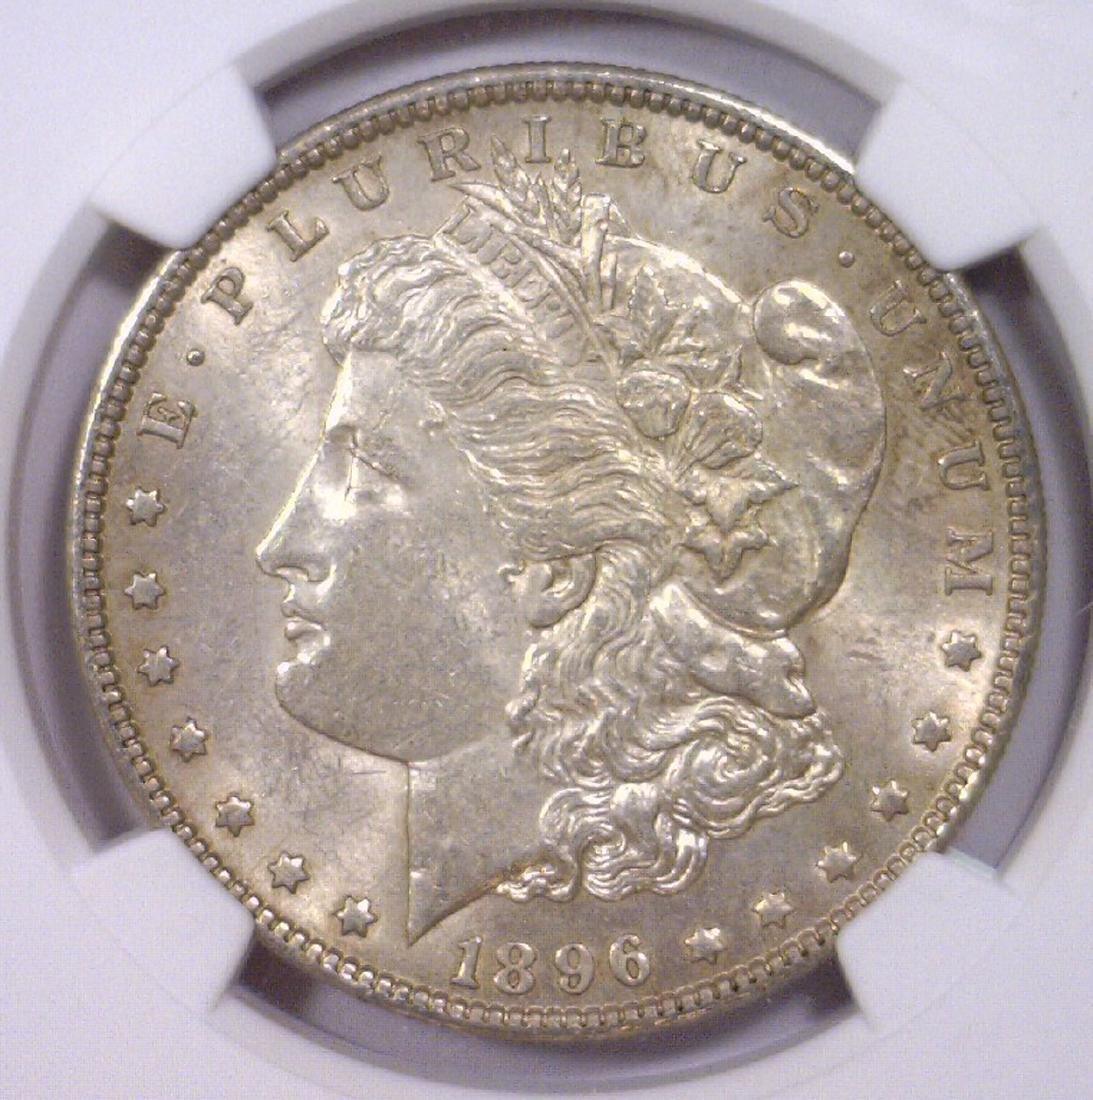 1896 Morgan Silver Dollar NGC AU58